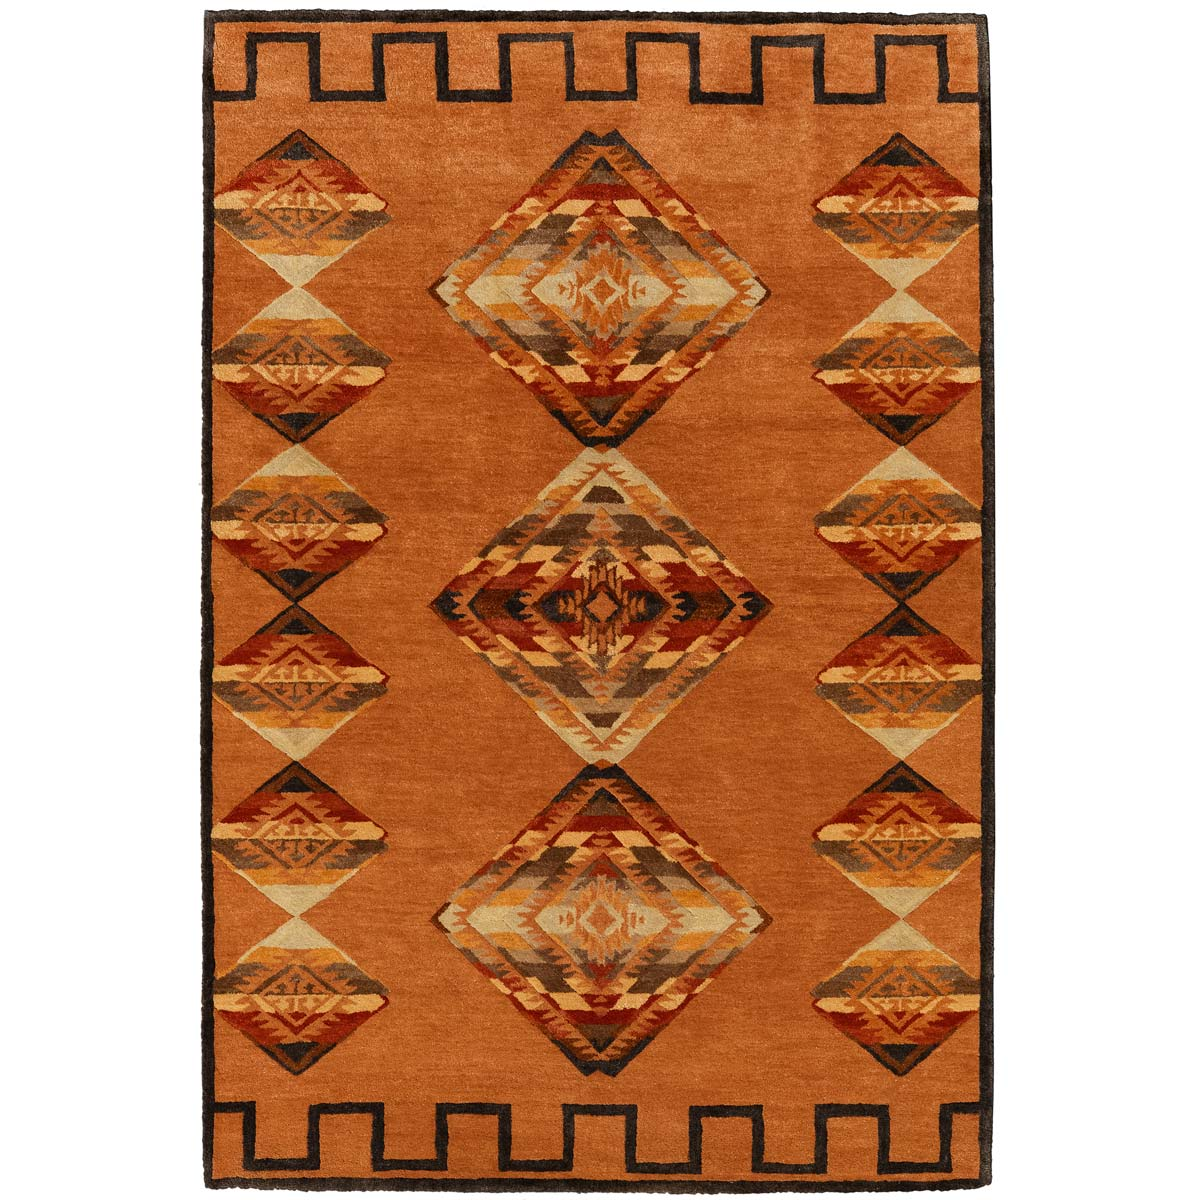 Desert Diamond Terra Cotta Rug - 6 x 9